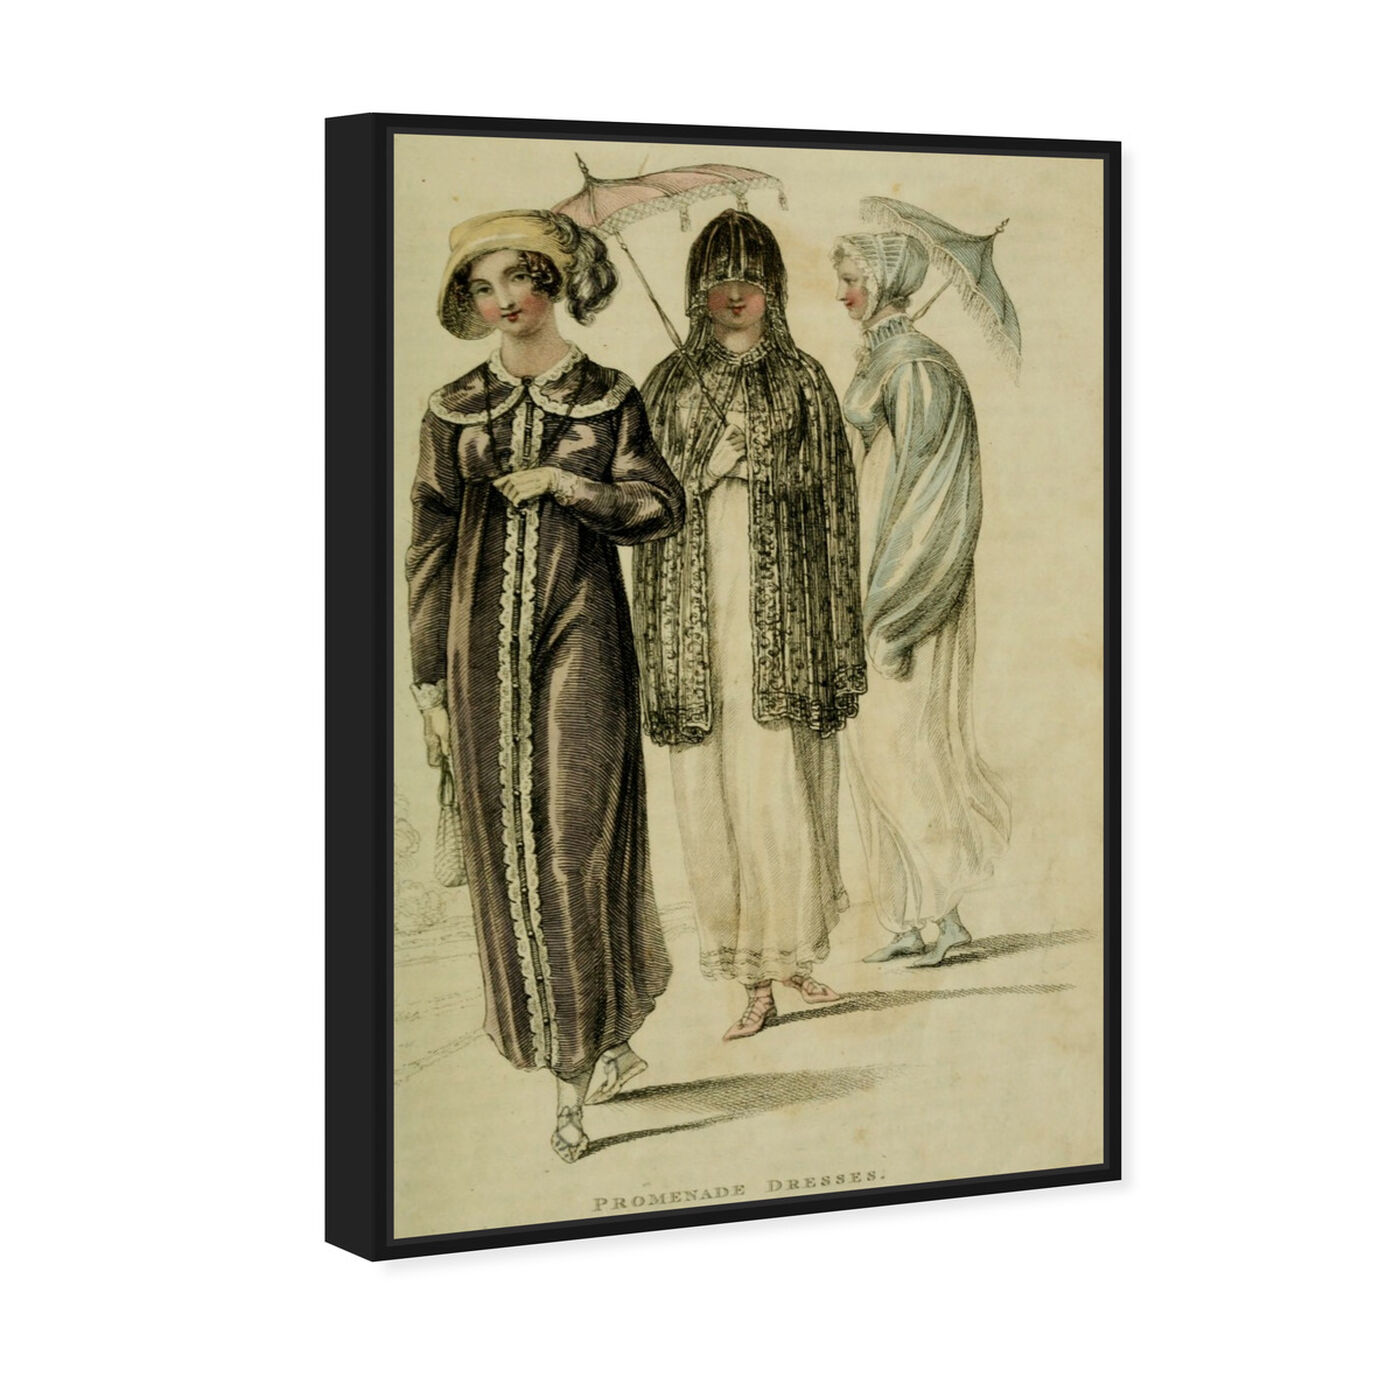 Angled view of Promenade Dresses - The Art Cabinet featuring classic and figurative and realism art.